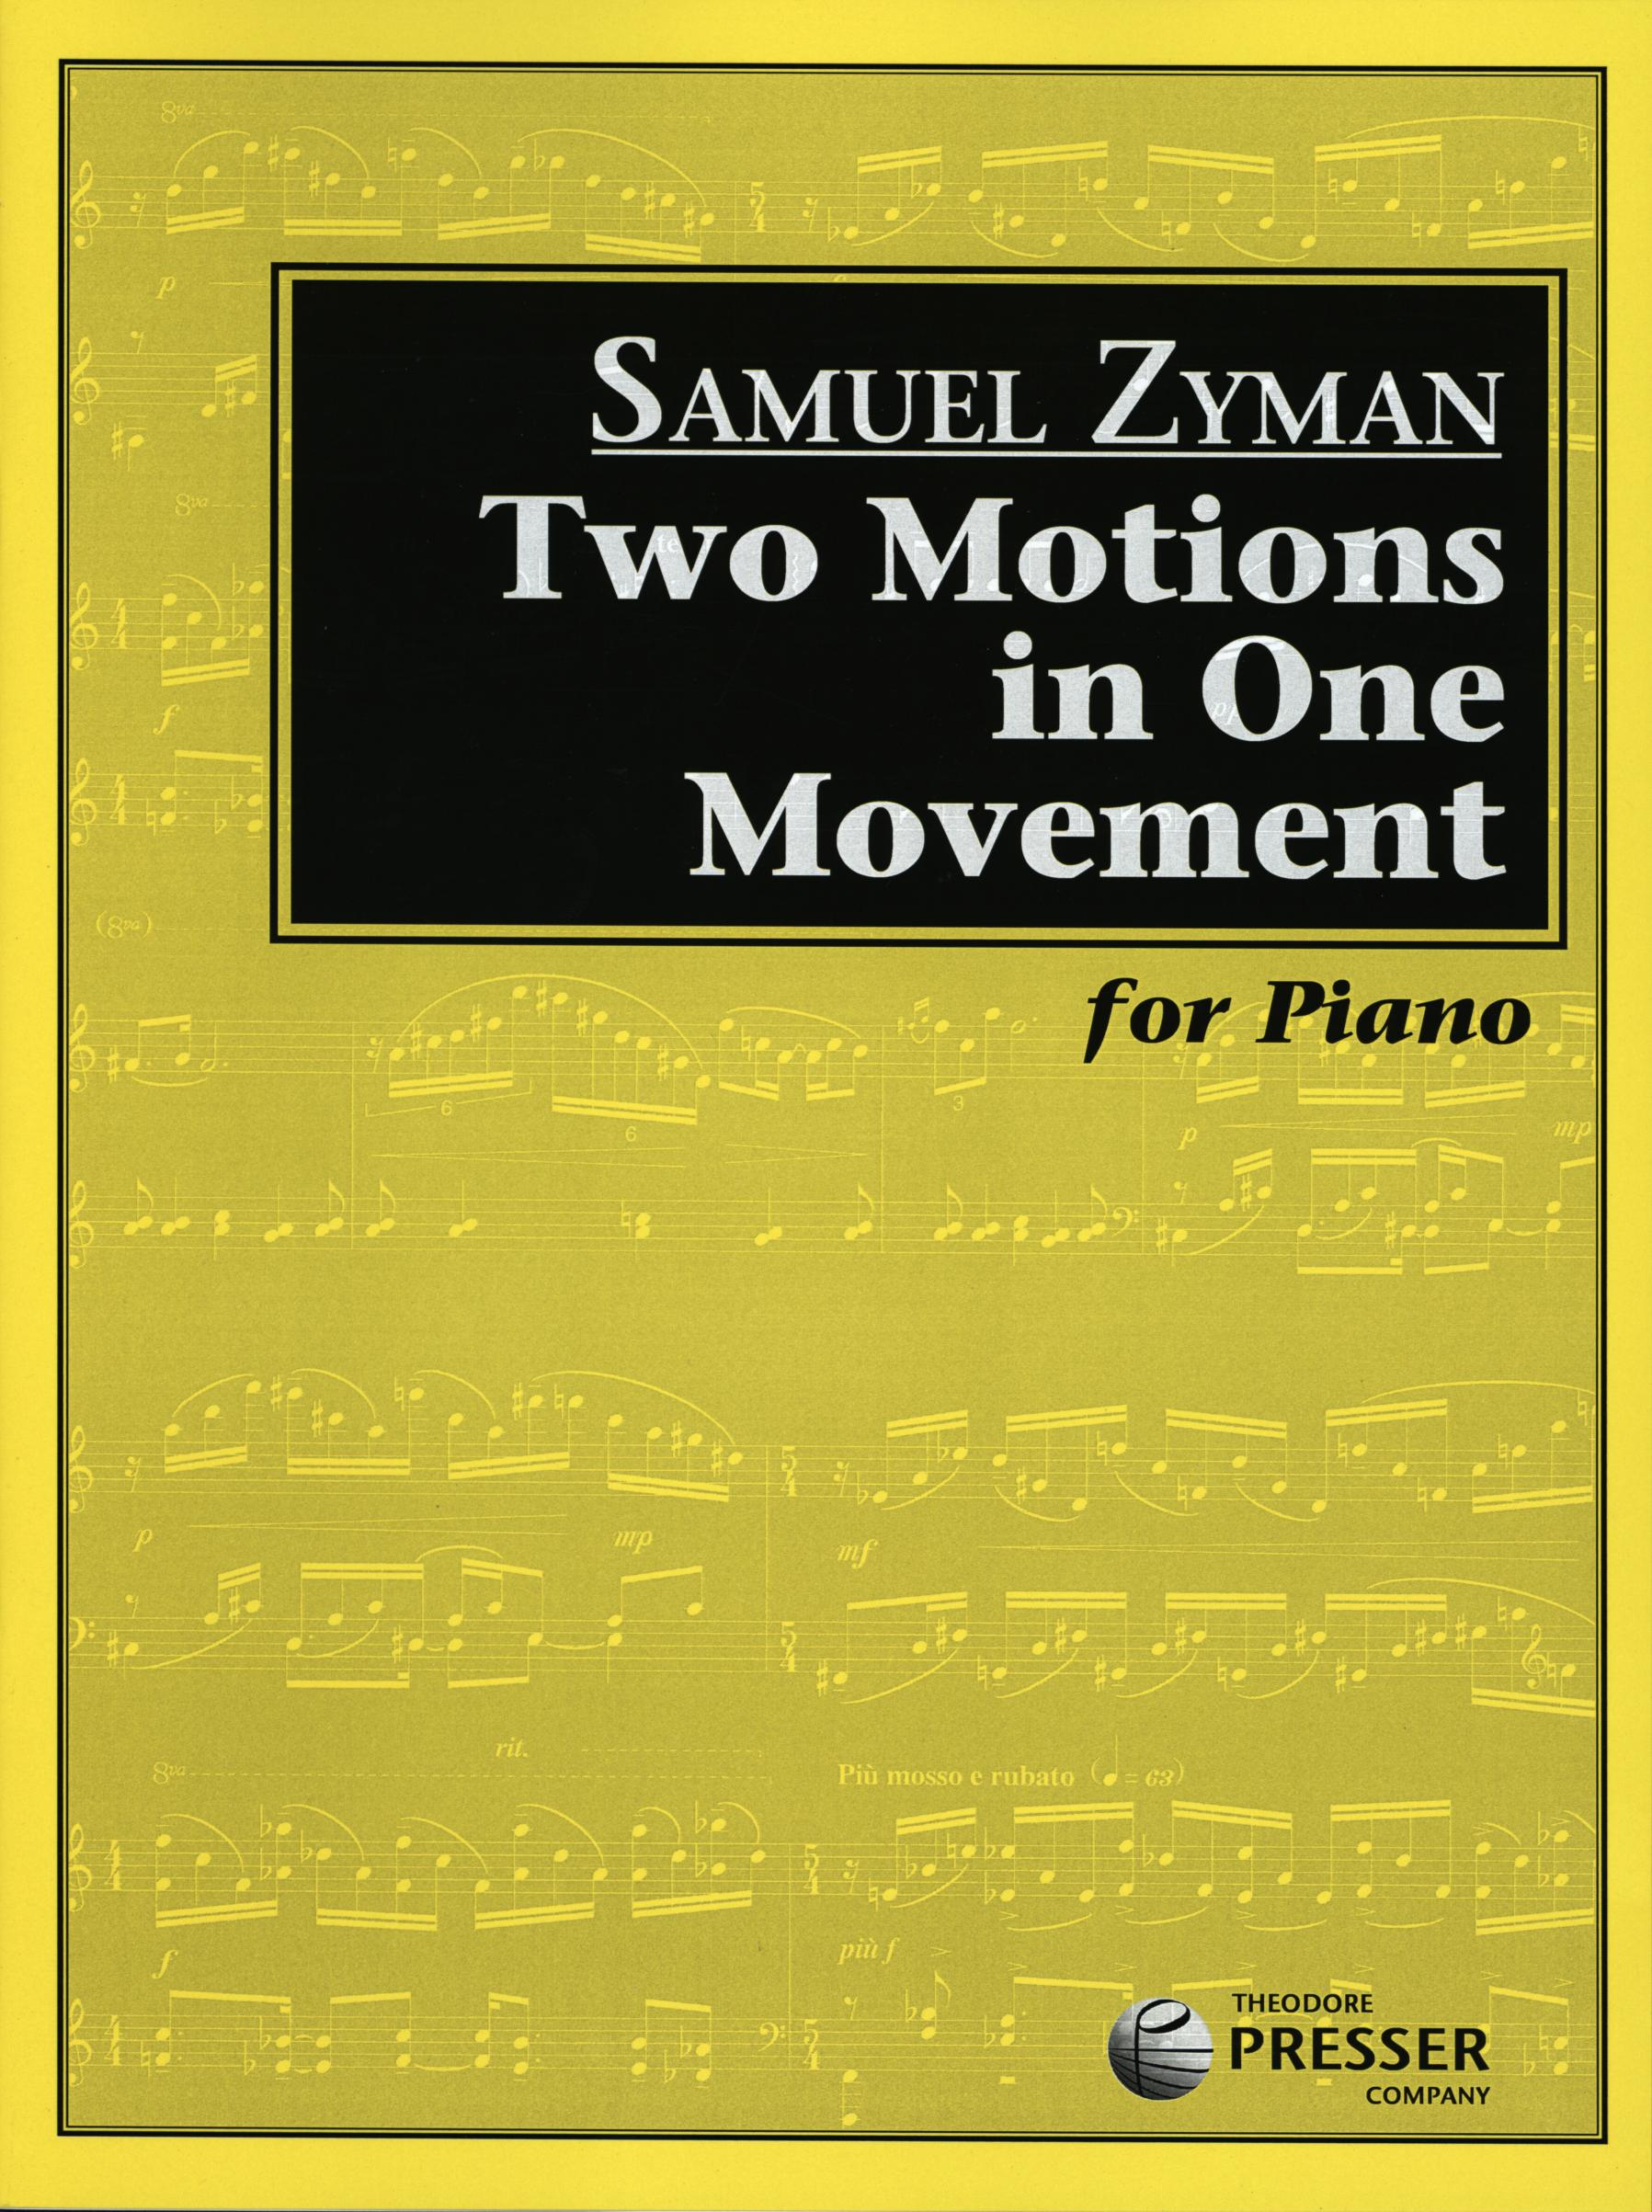 Zyman: Two Motions in One Movement